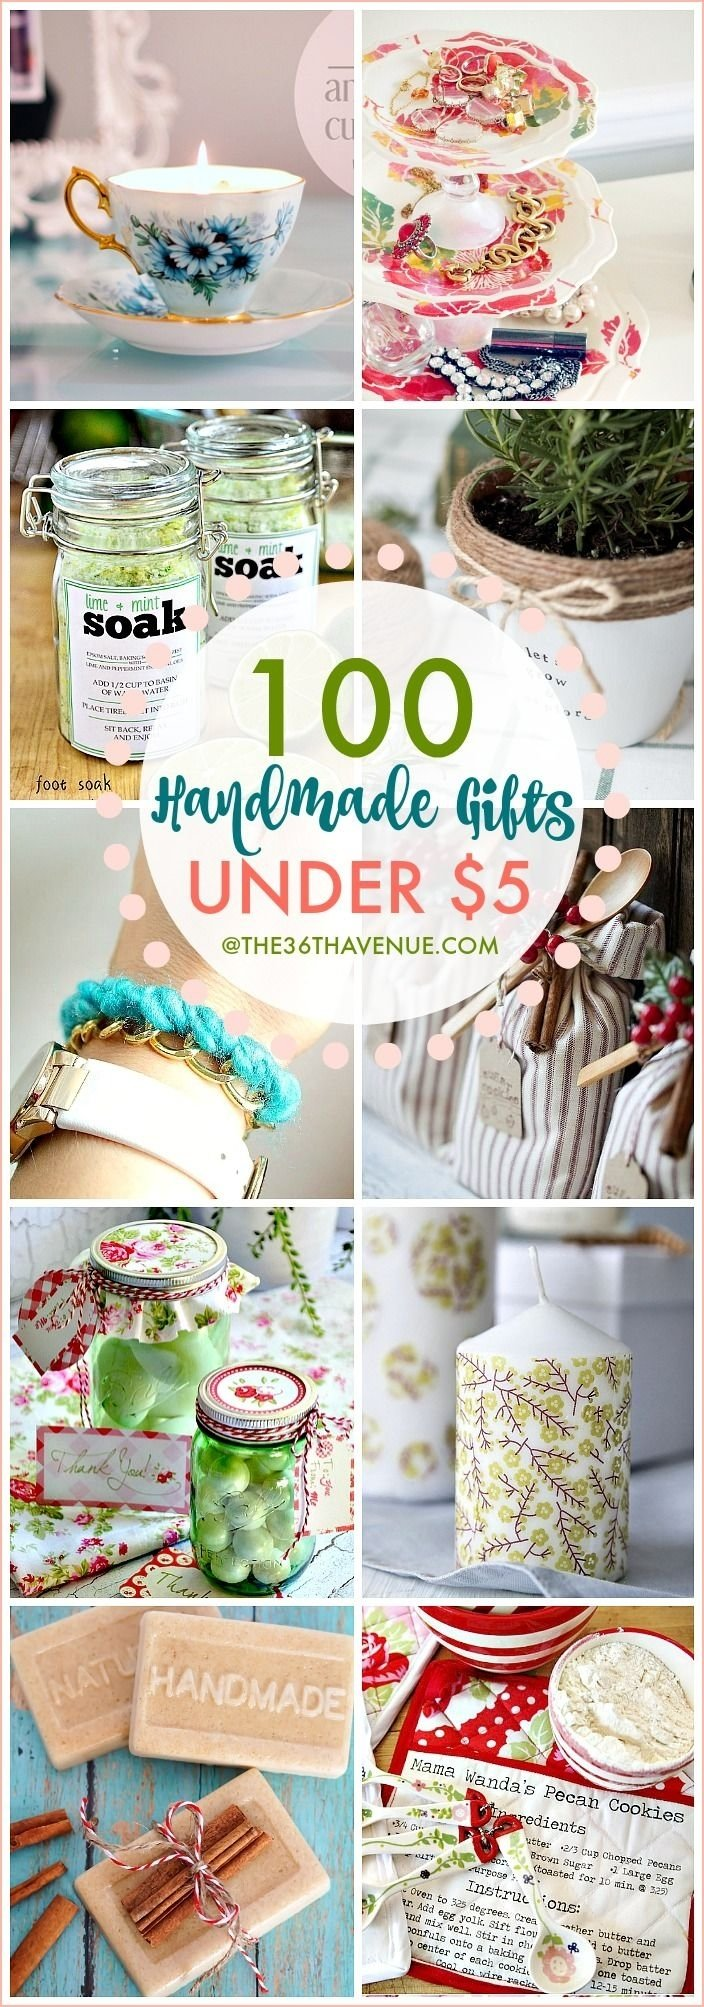 10 Fabulous Top 5 Christmas Gift Ideas For Women 51 best diy gift ideas images on pinterest diy presents gift